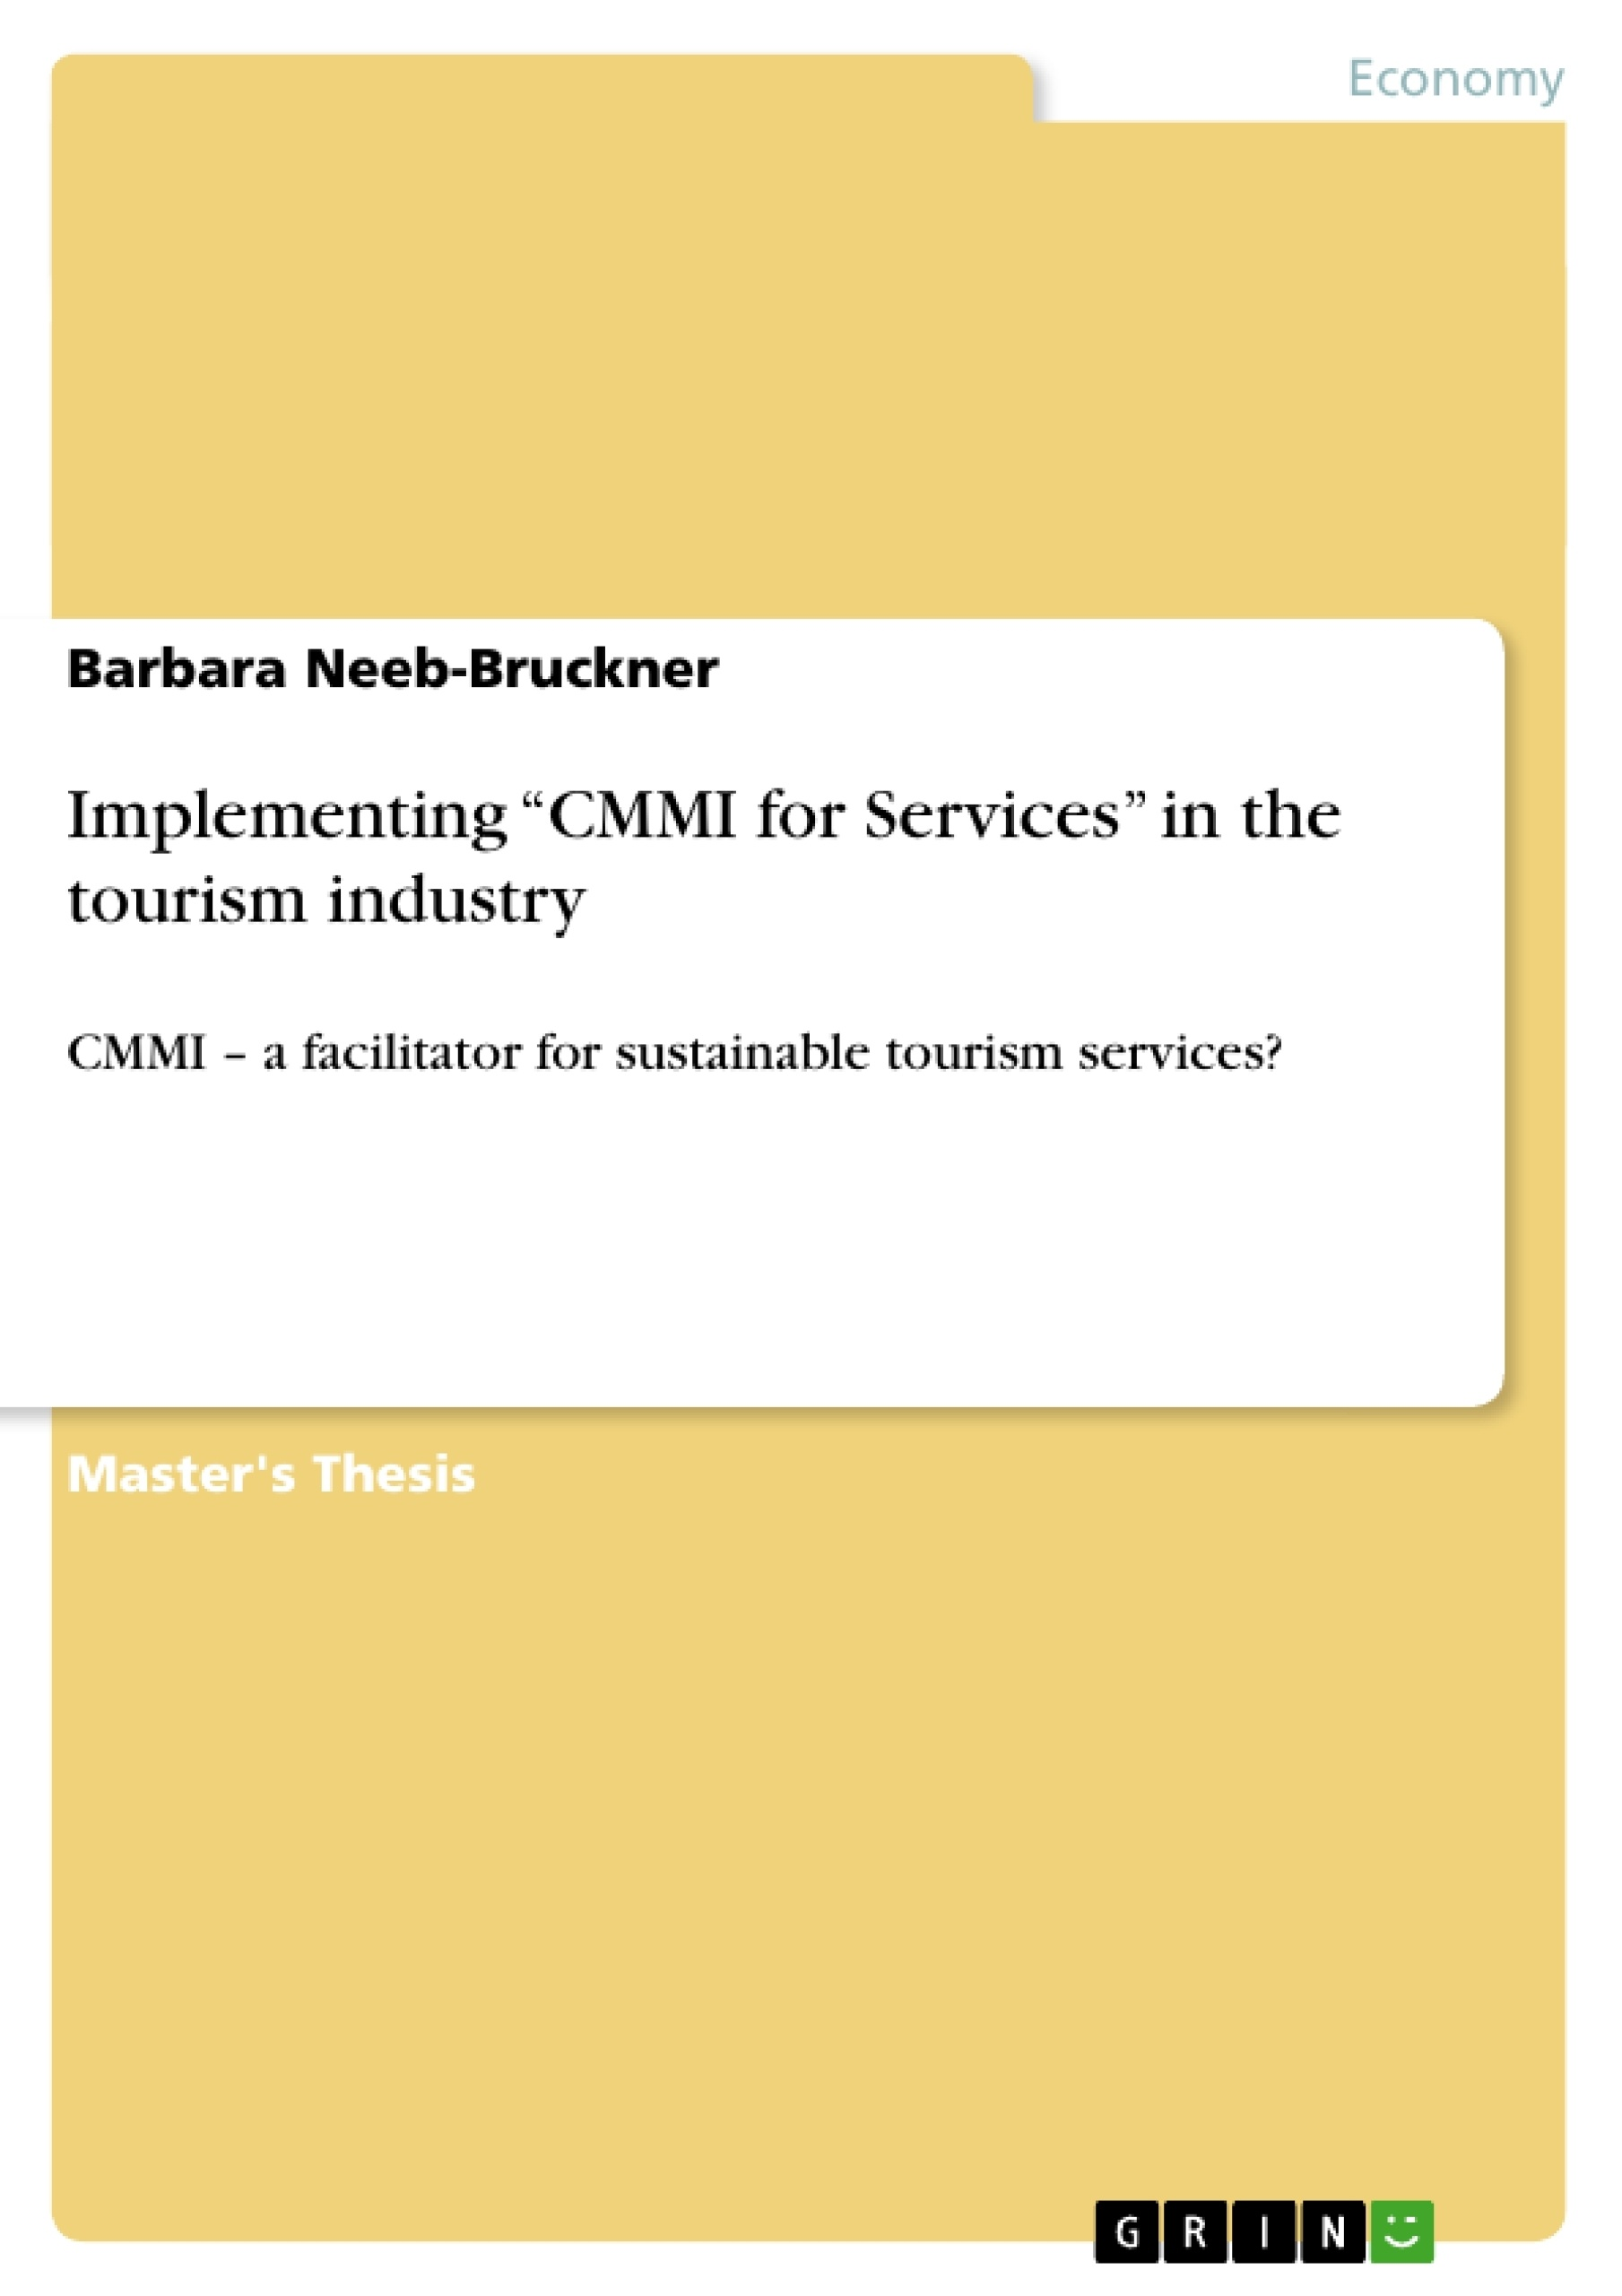 master thesis in tourism industry Tourism management non-thesis master programs  marketing for tourism and recreation industry (tkmt 314) introduction to tourism industry (thrm 111.